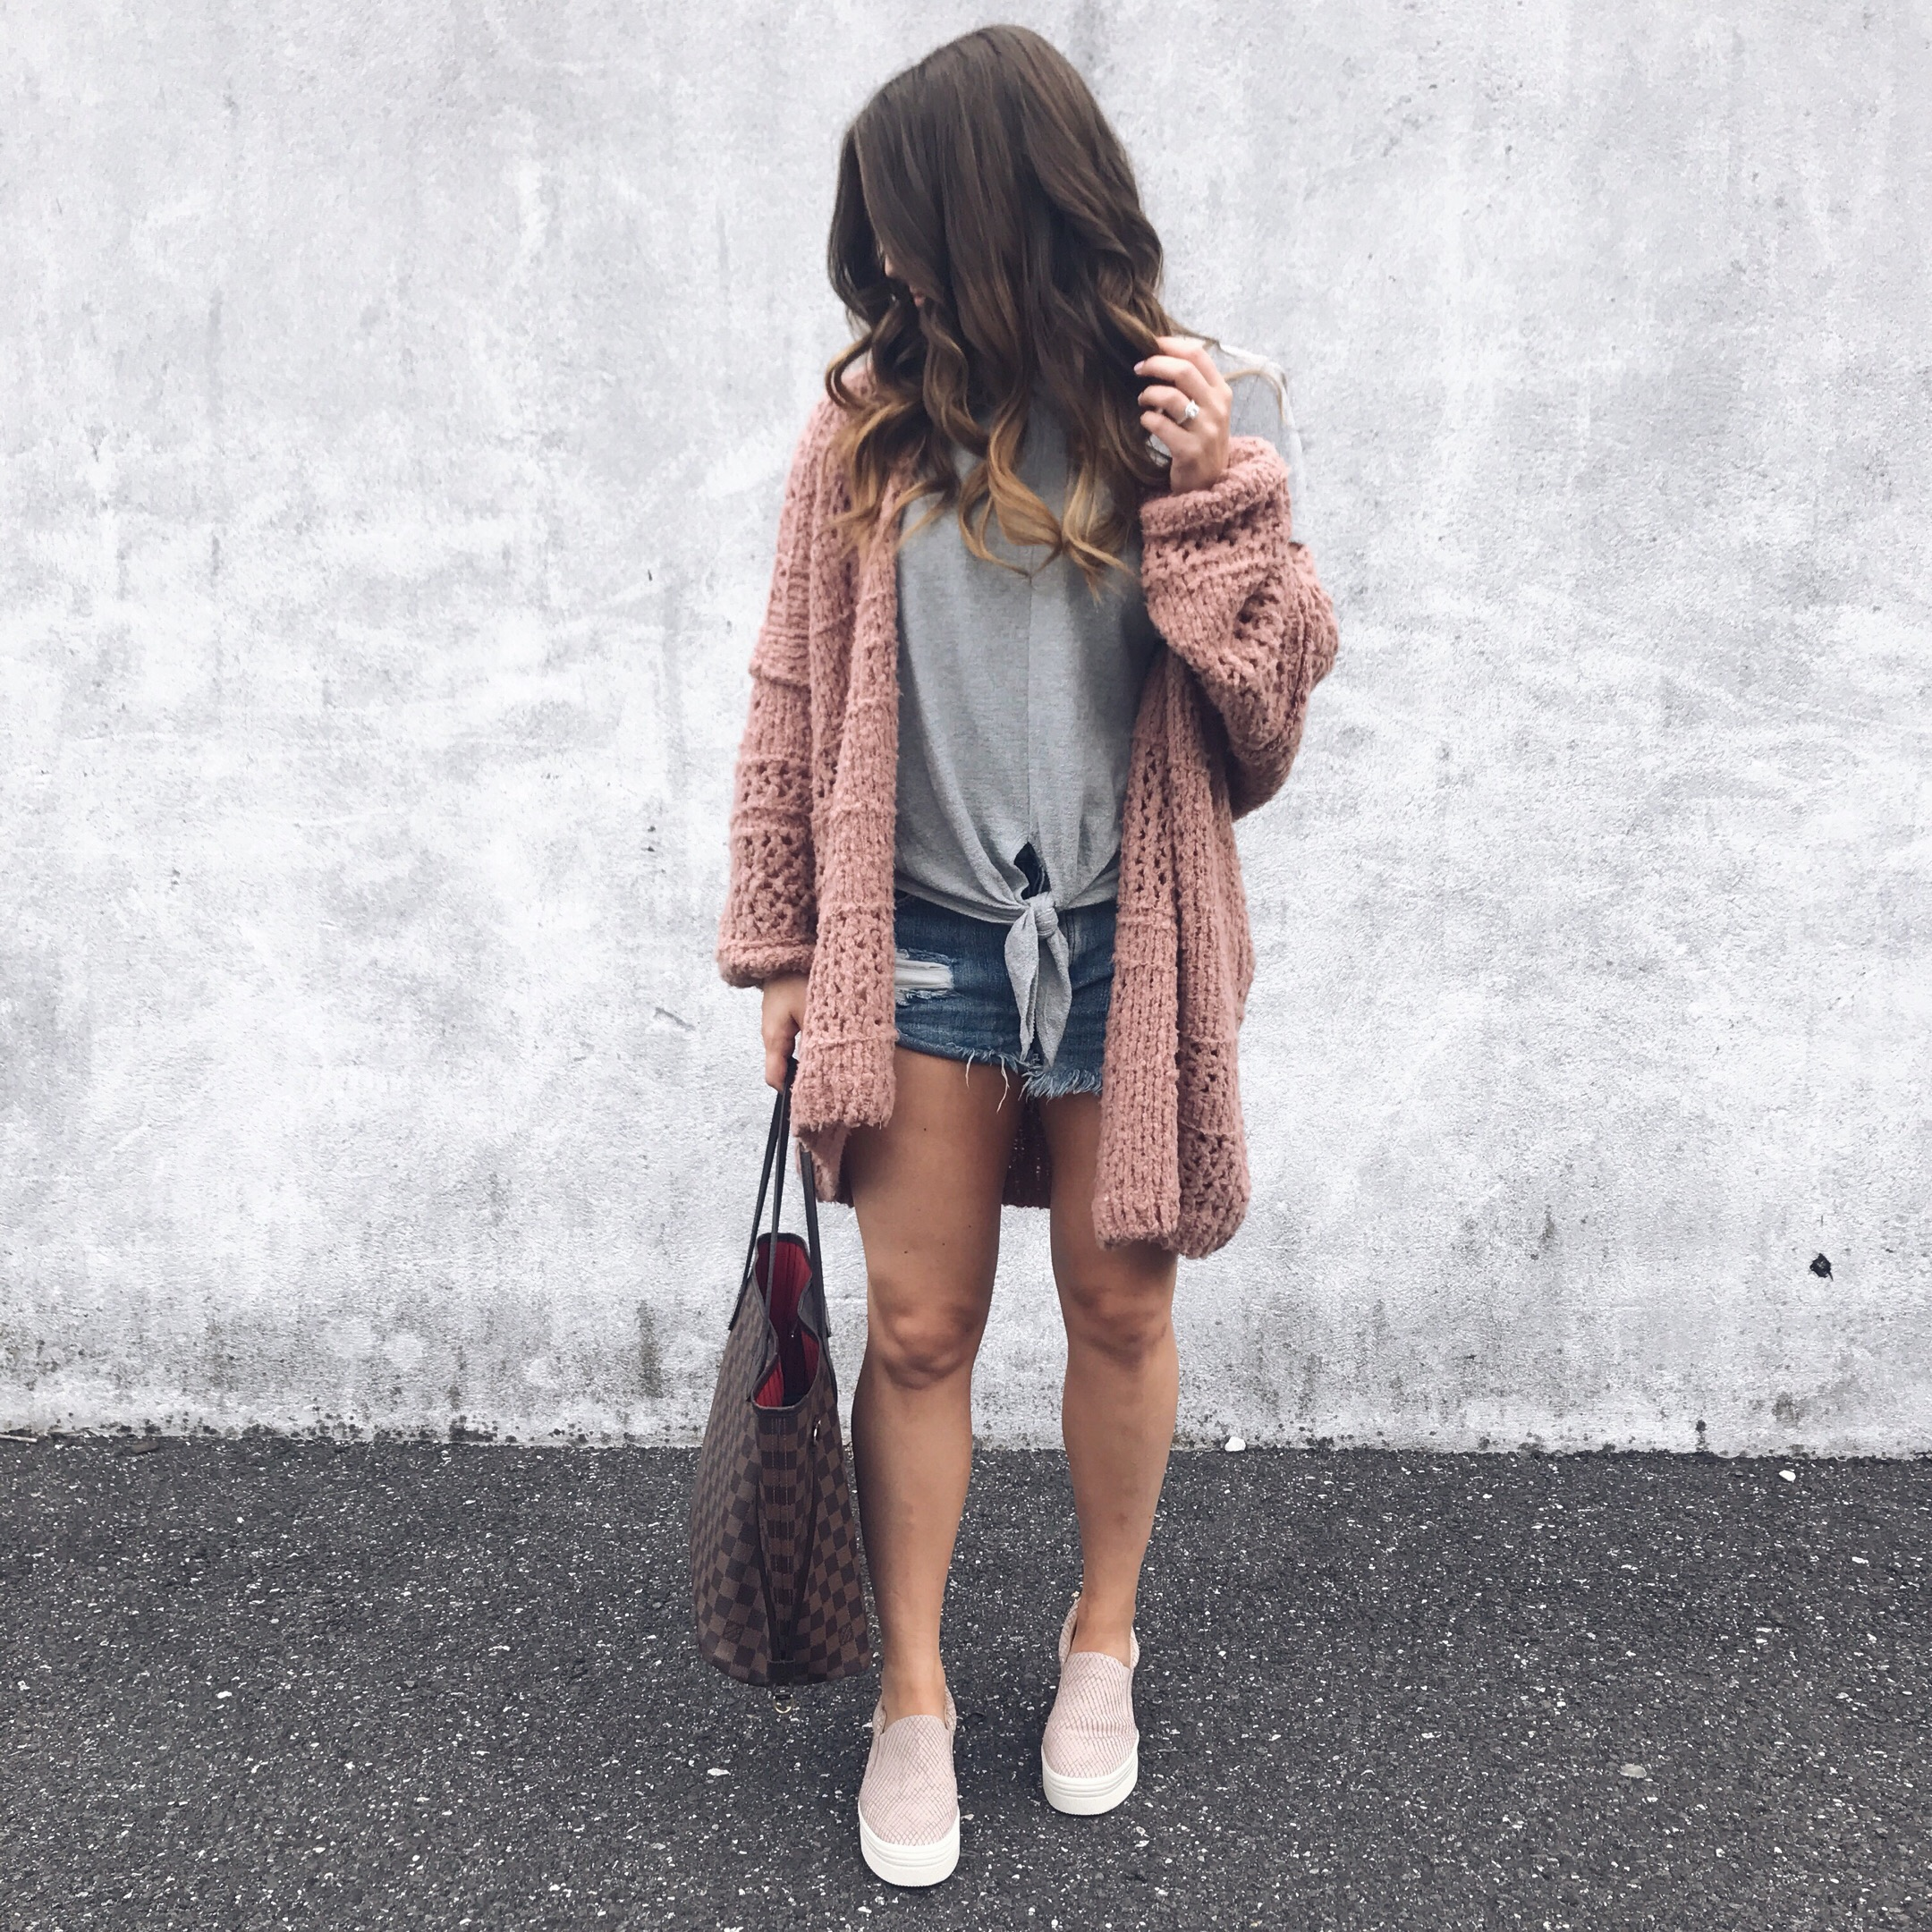 marc fisher slip ons / free people cardigan / madewell tie front tee / one teaspoon shorts / fall transition outfit idea